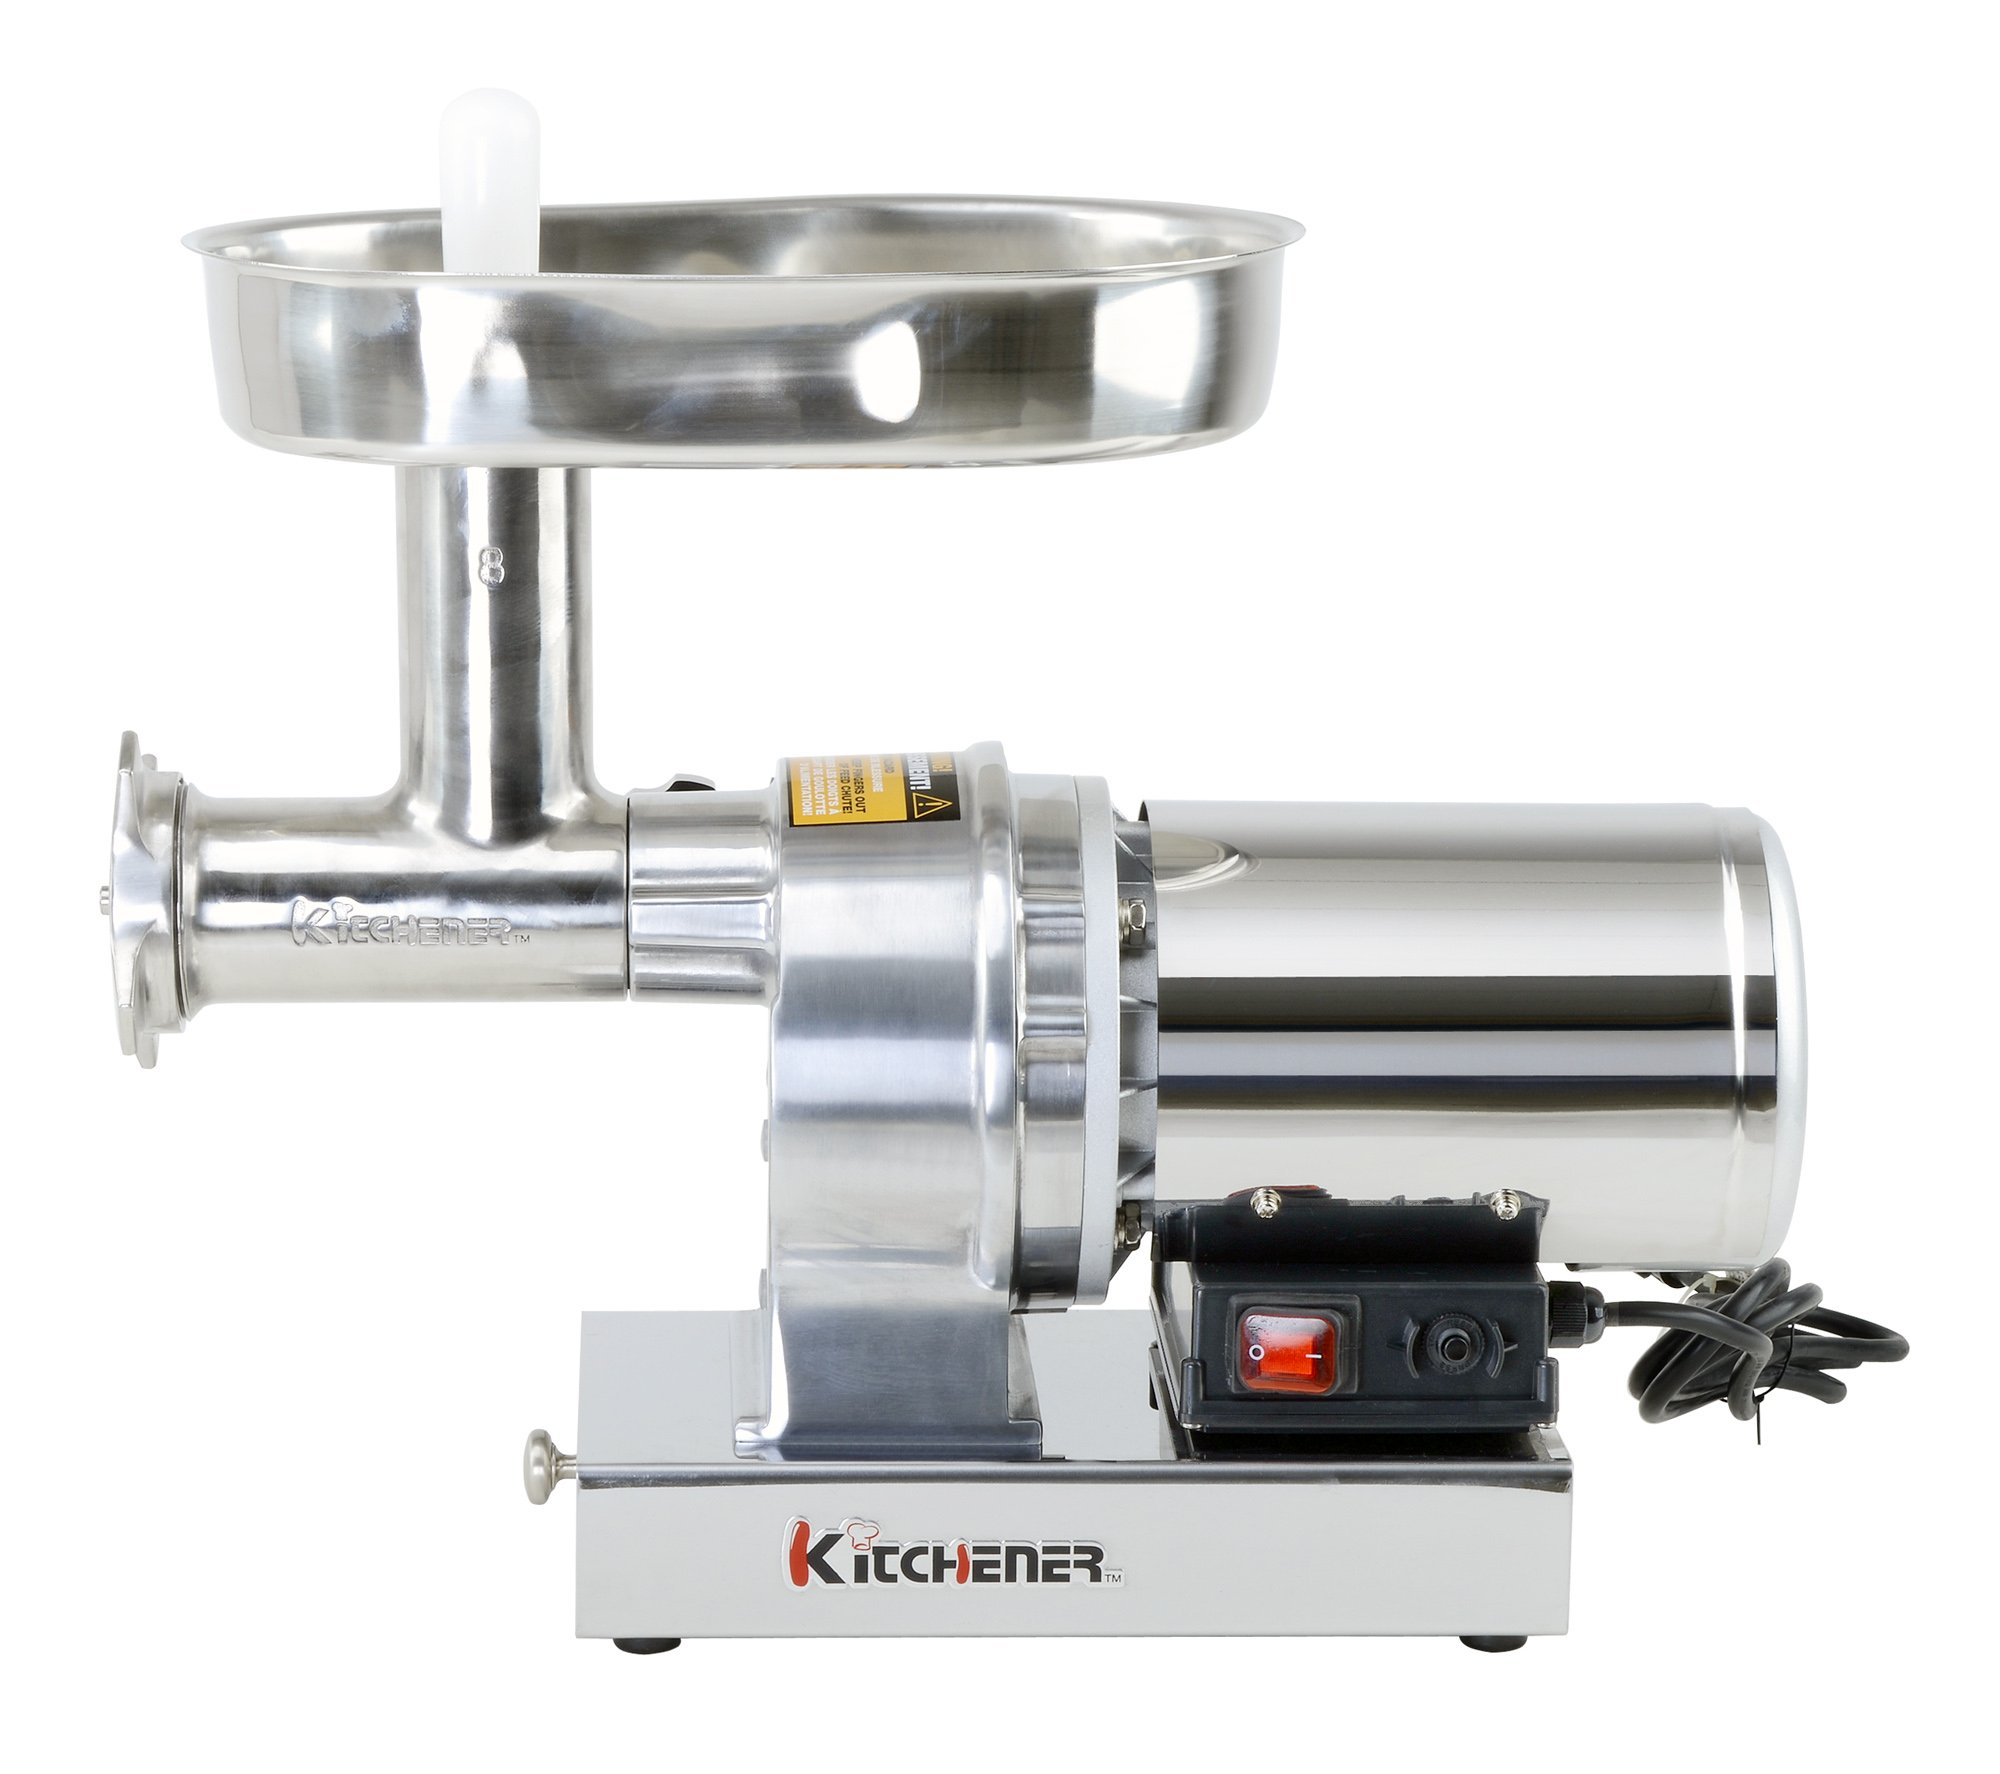 Kitchener #8 Commercial Grade Electric Stainless Steel Meat Grinder 1/2 HP (370W), (480-lbs Per Hour) by Kitchener (Image #6)